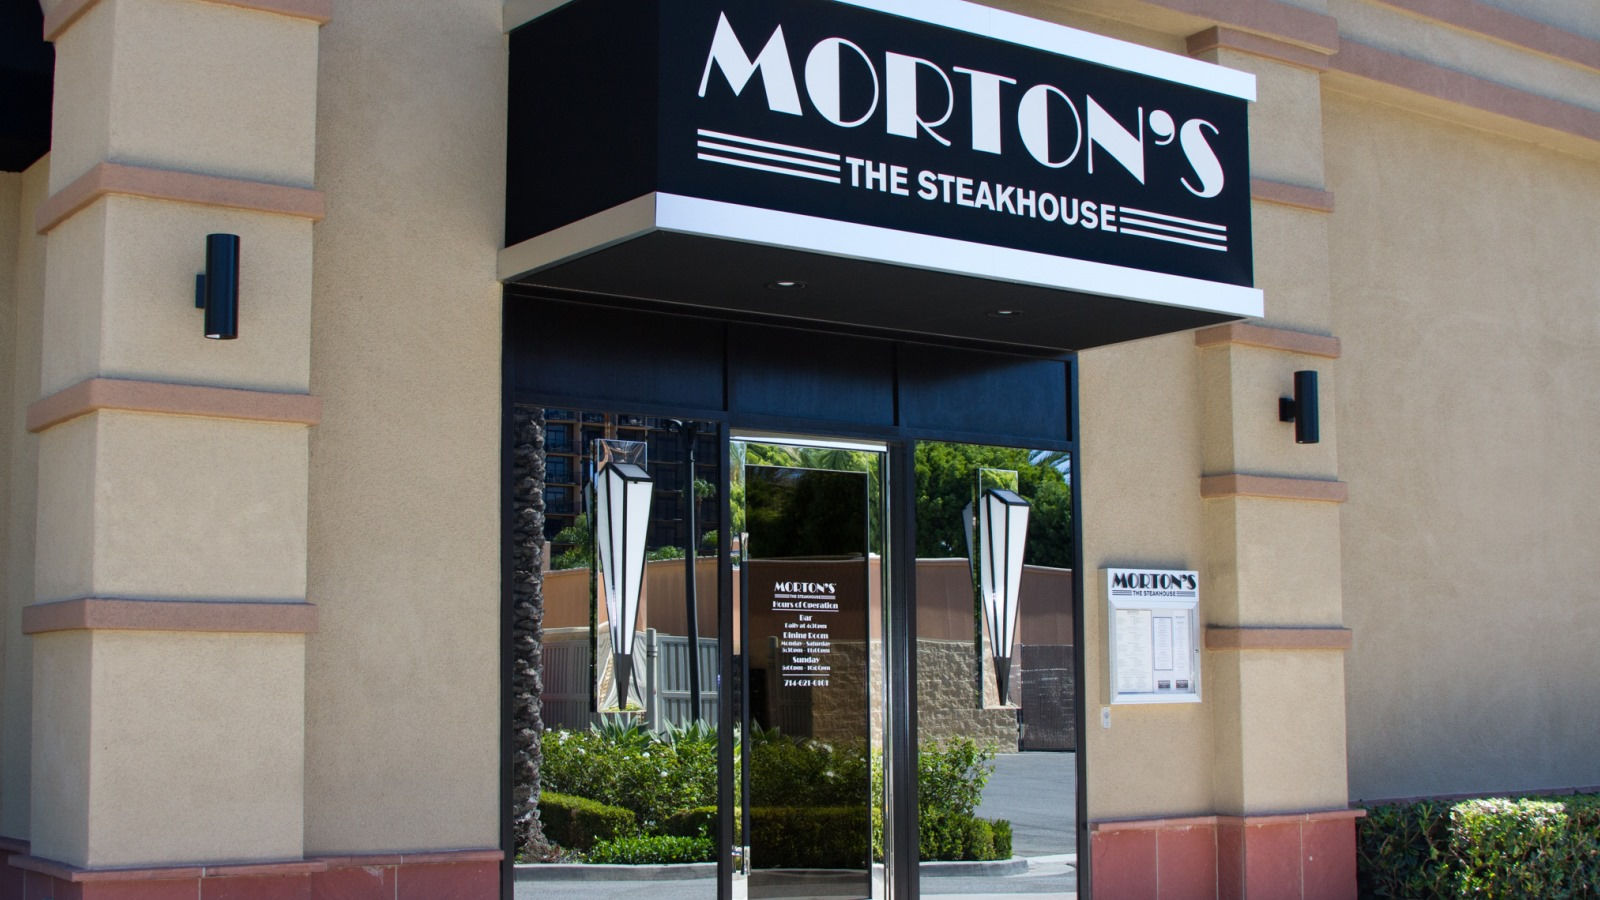 Morton's The Steakhouse Anaheim - Exterior